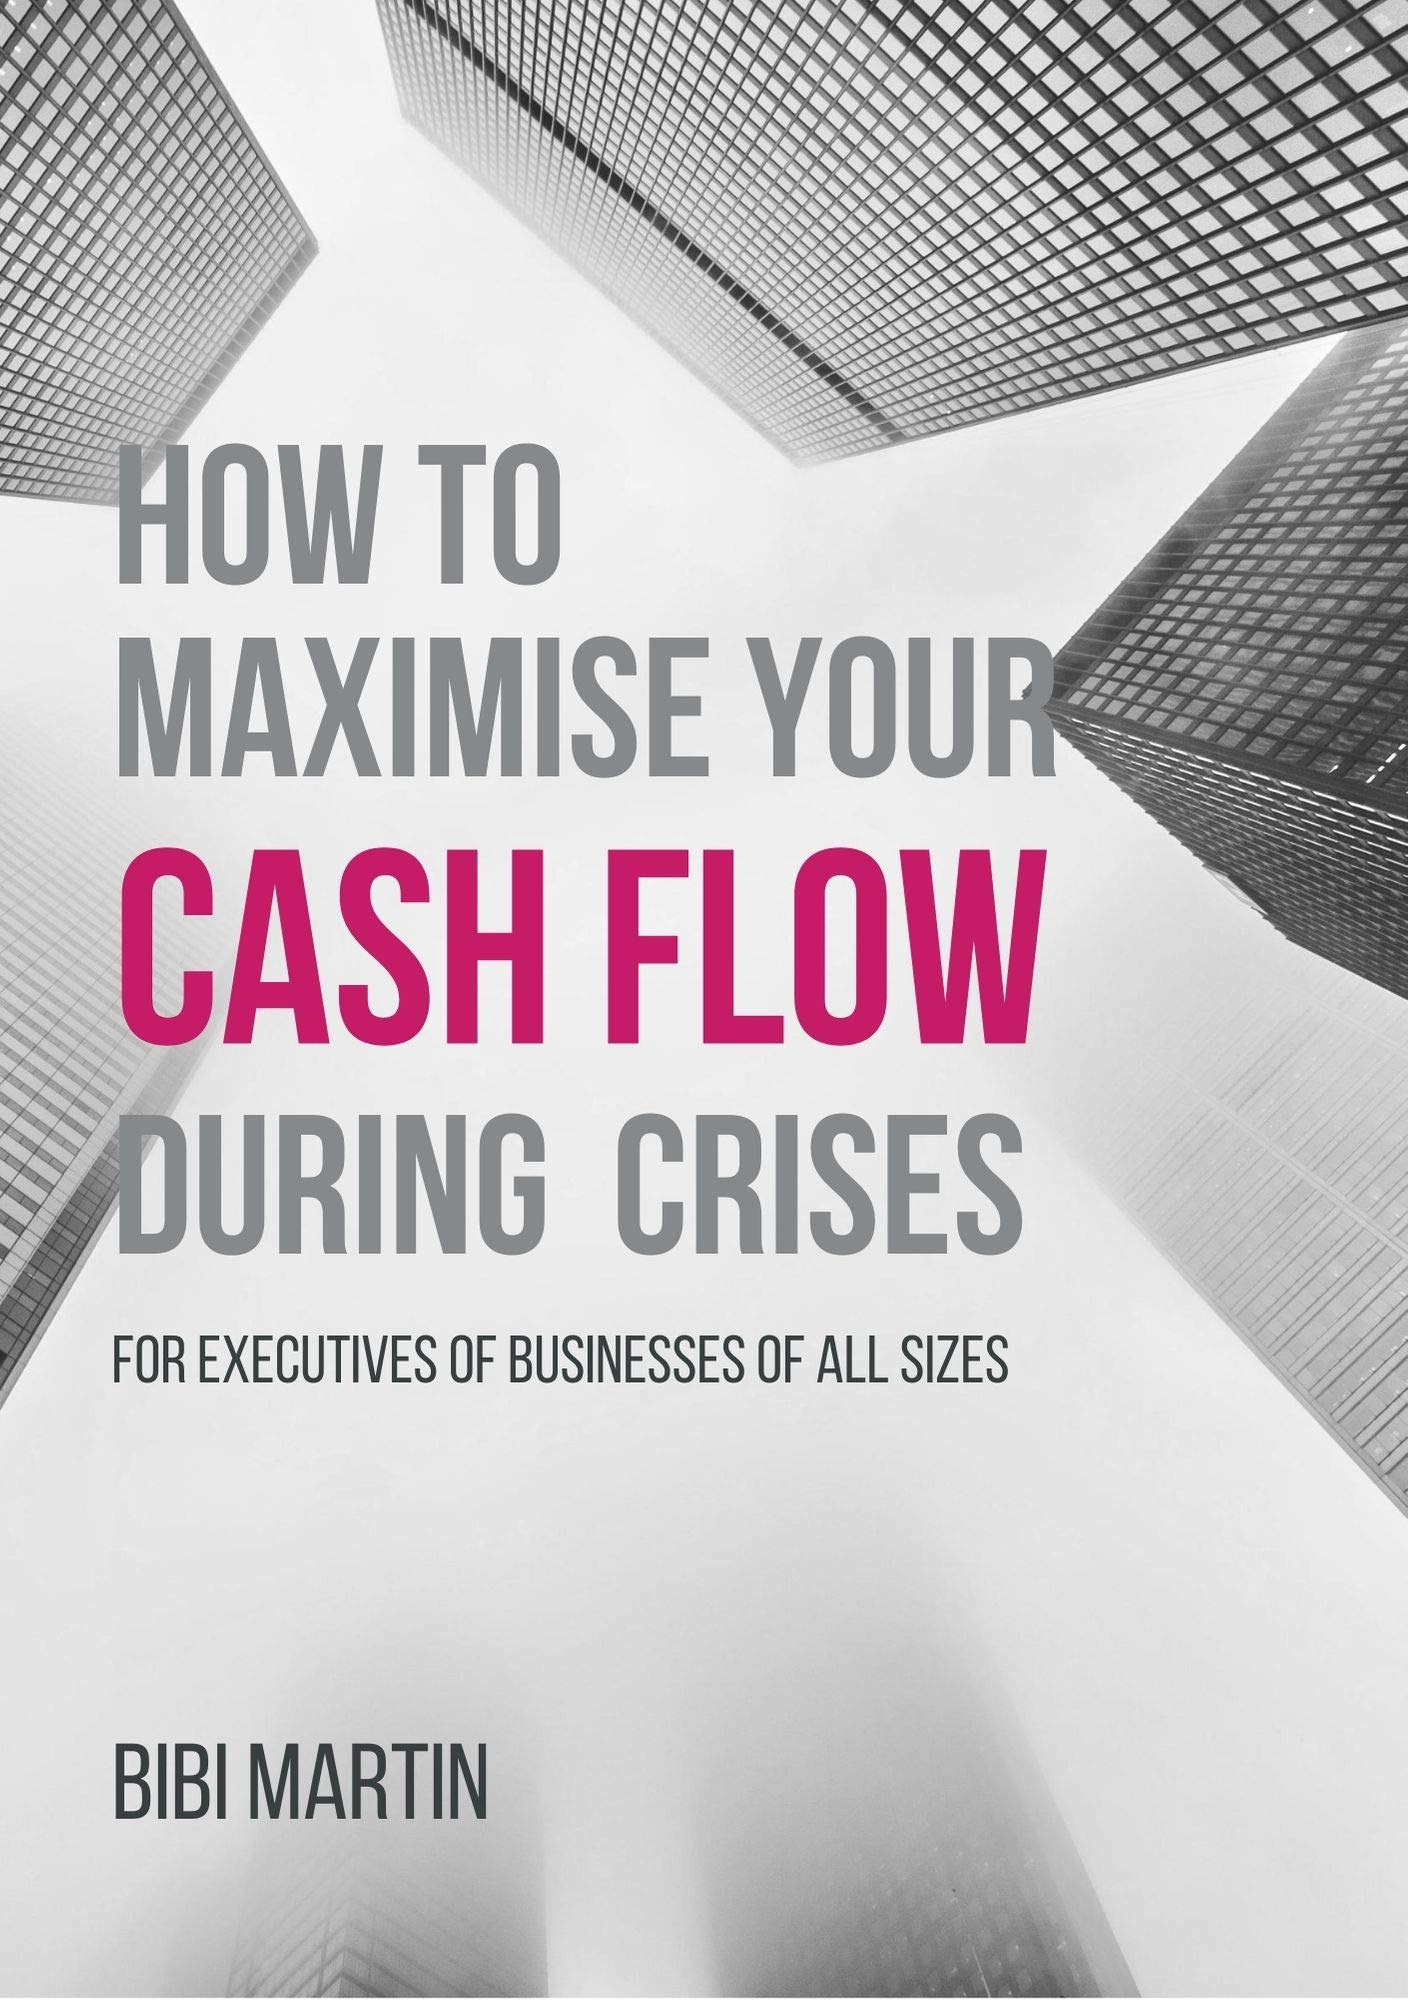 How to Maximise Your Cash Flow During Crises: For Executives of Businesses of All Sizes